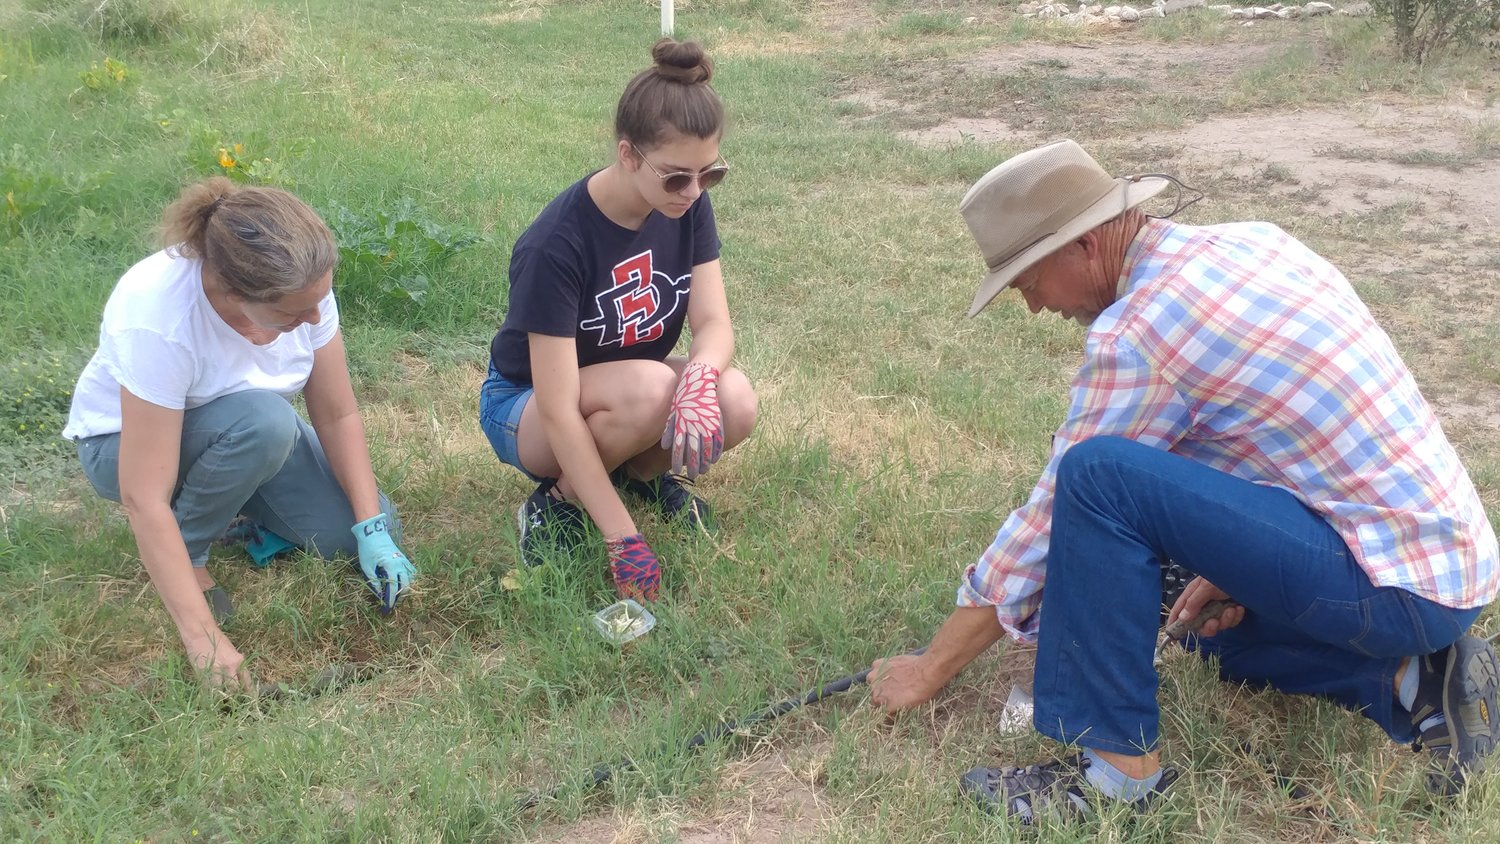 Urban garden volunteers Gina Marquez, left, and Lily Marquez planting seeds with Doña Ana Soil and Water Conservation District Supervisor Craig Fenske.